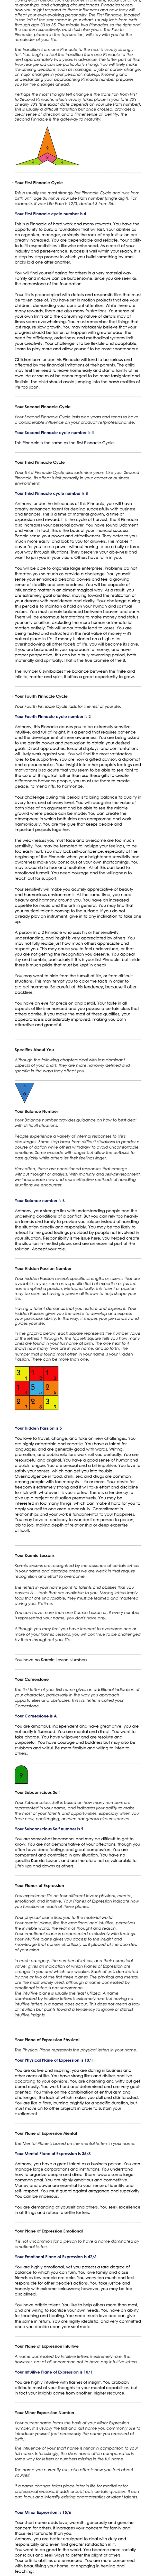 The third part of the numerology reading deals with long-term cycles and numerology challenges